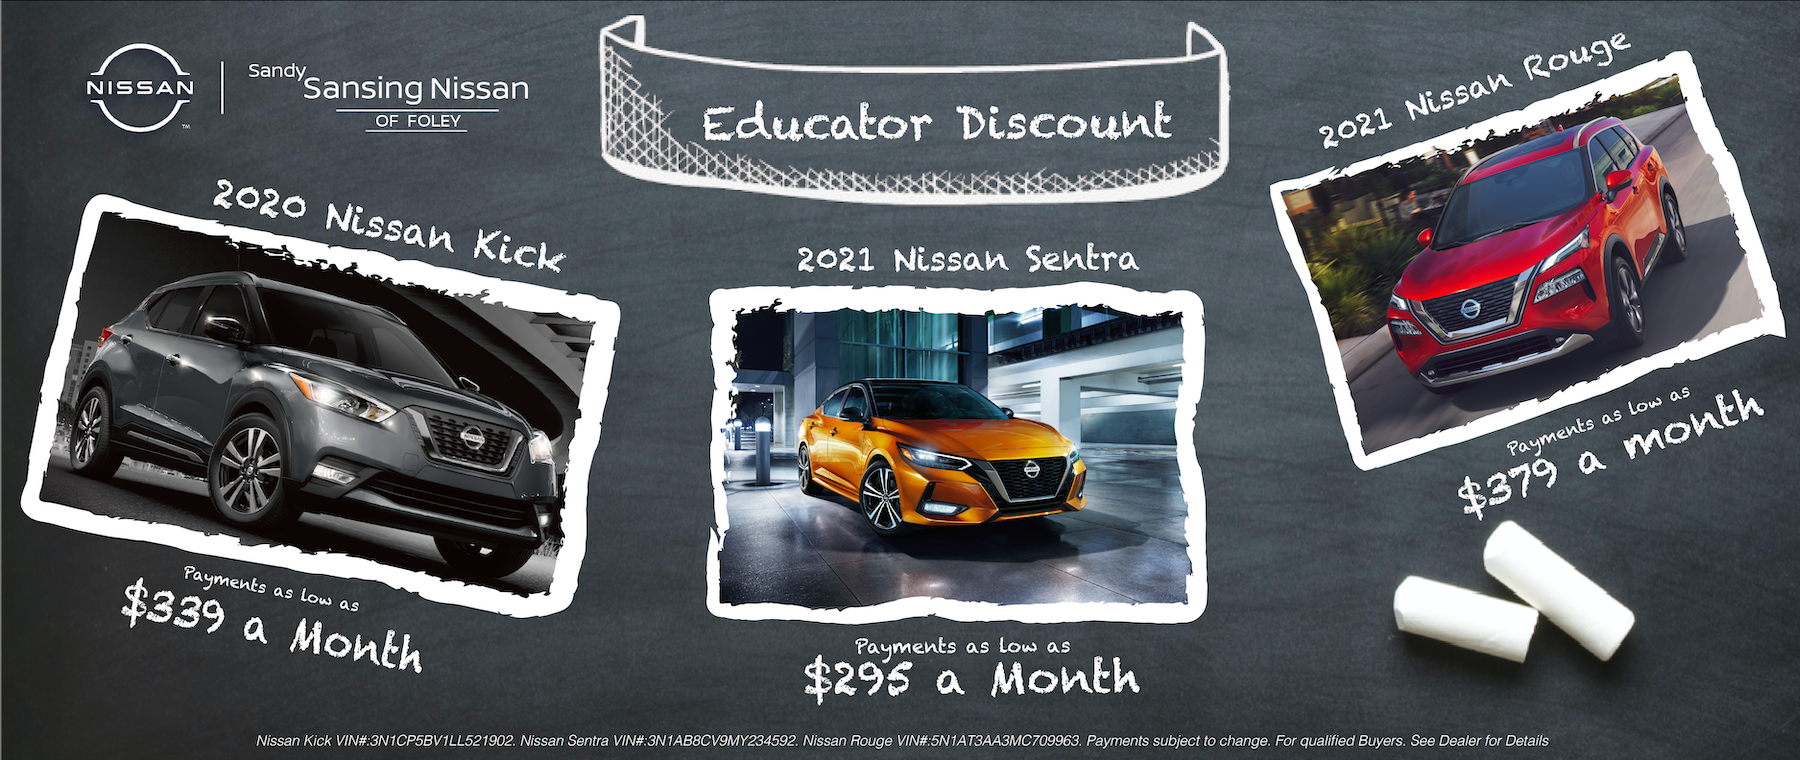 Nissan Educator Discount graphics_Website-Carousel-Graphic-v5